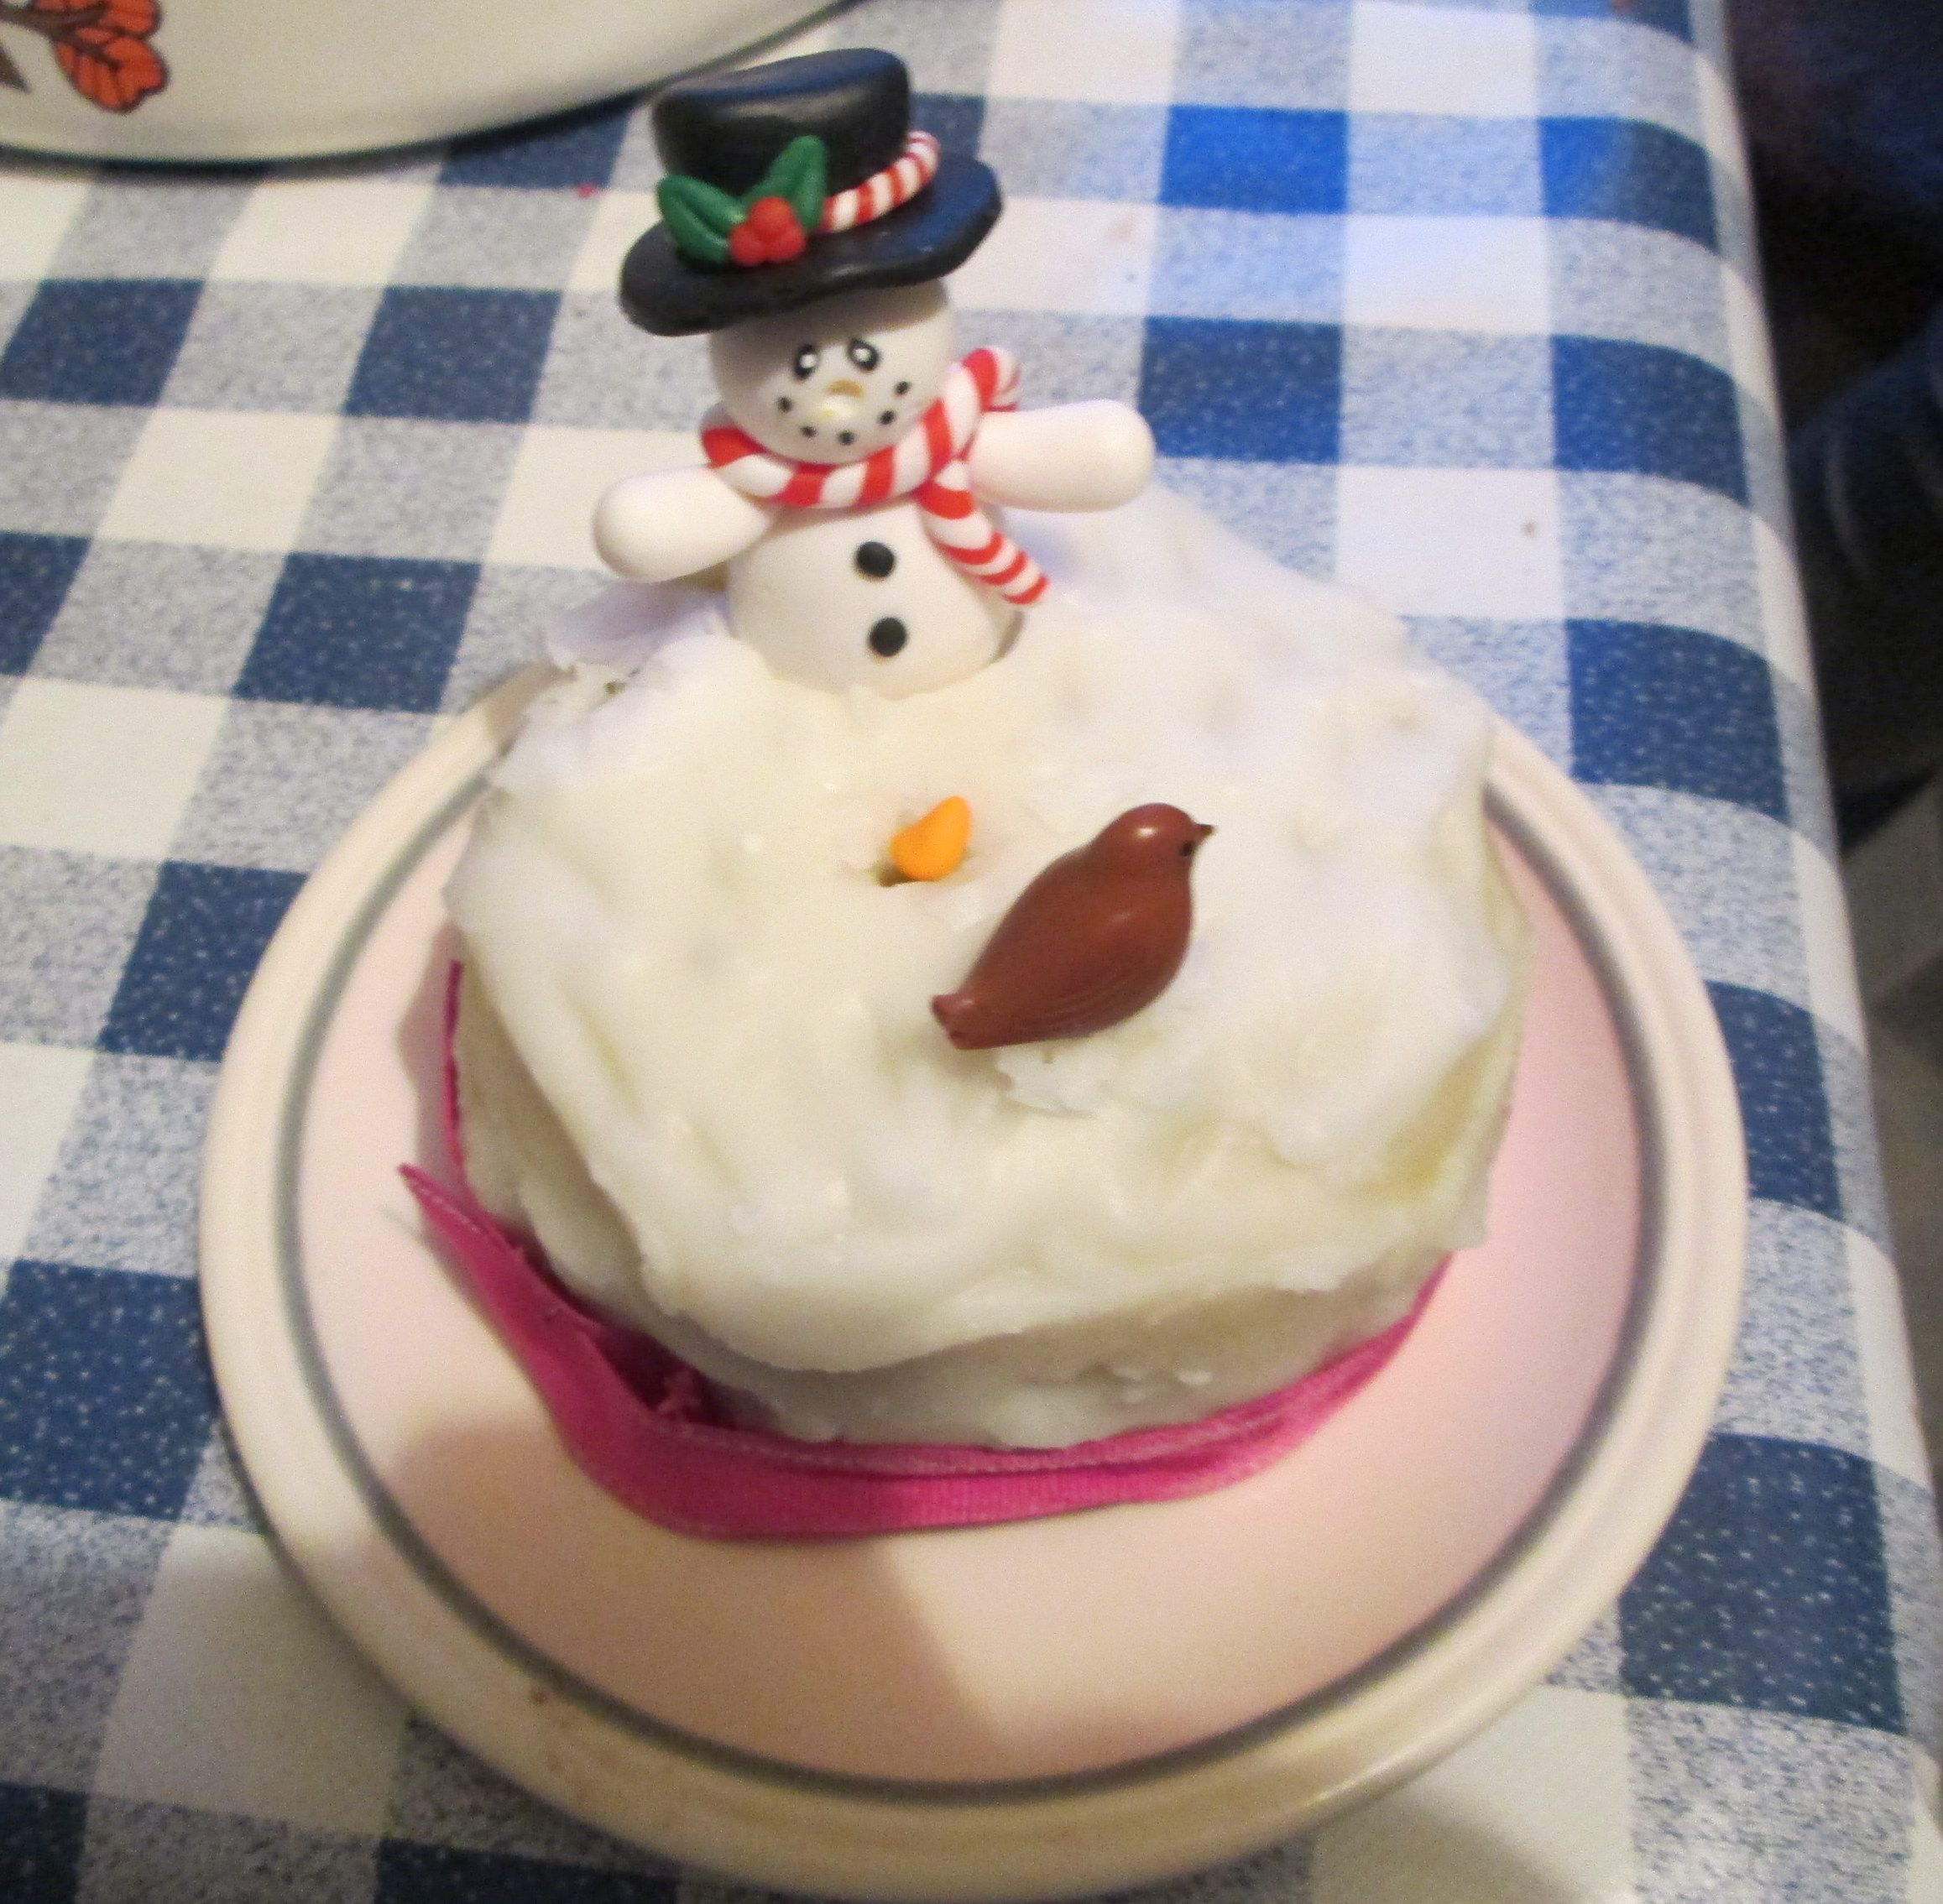 How to Make a Christmas Cake From Scratch | Cake baking, Irish ...